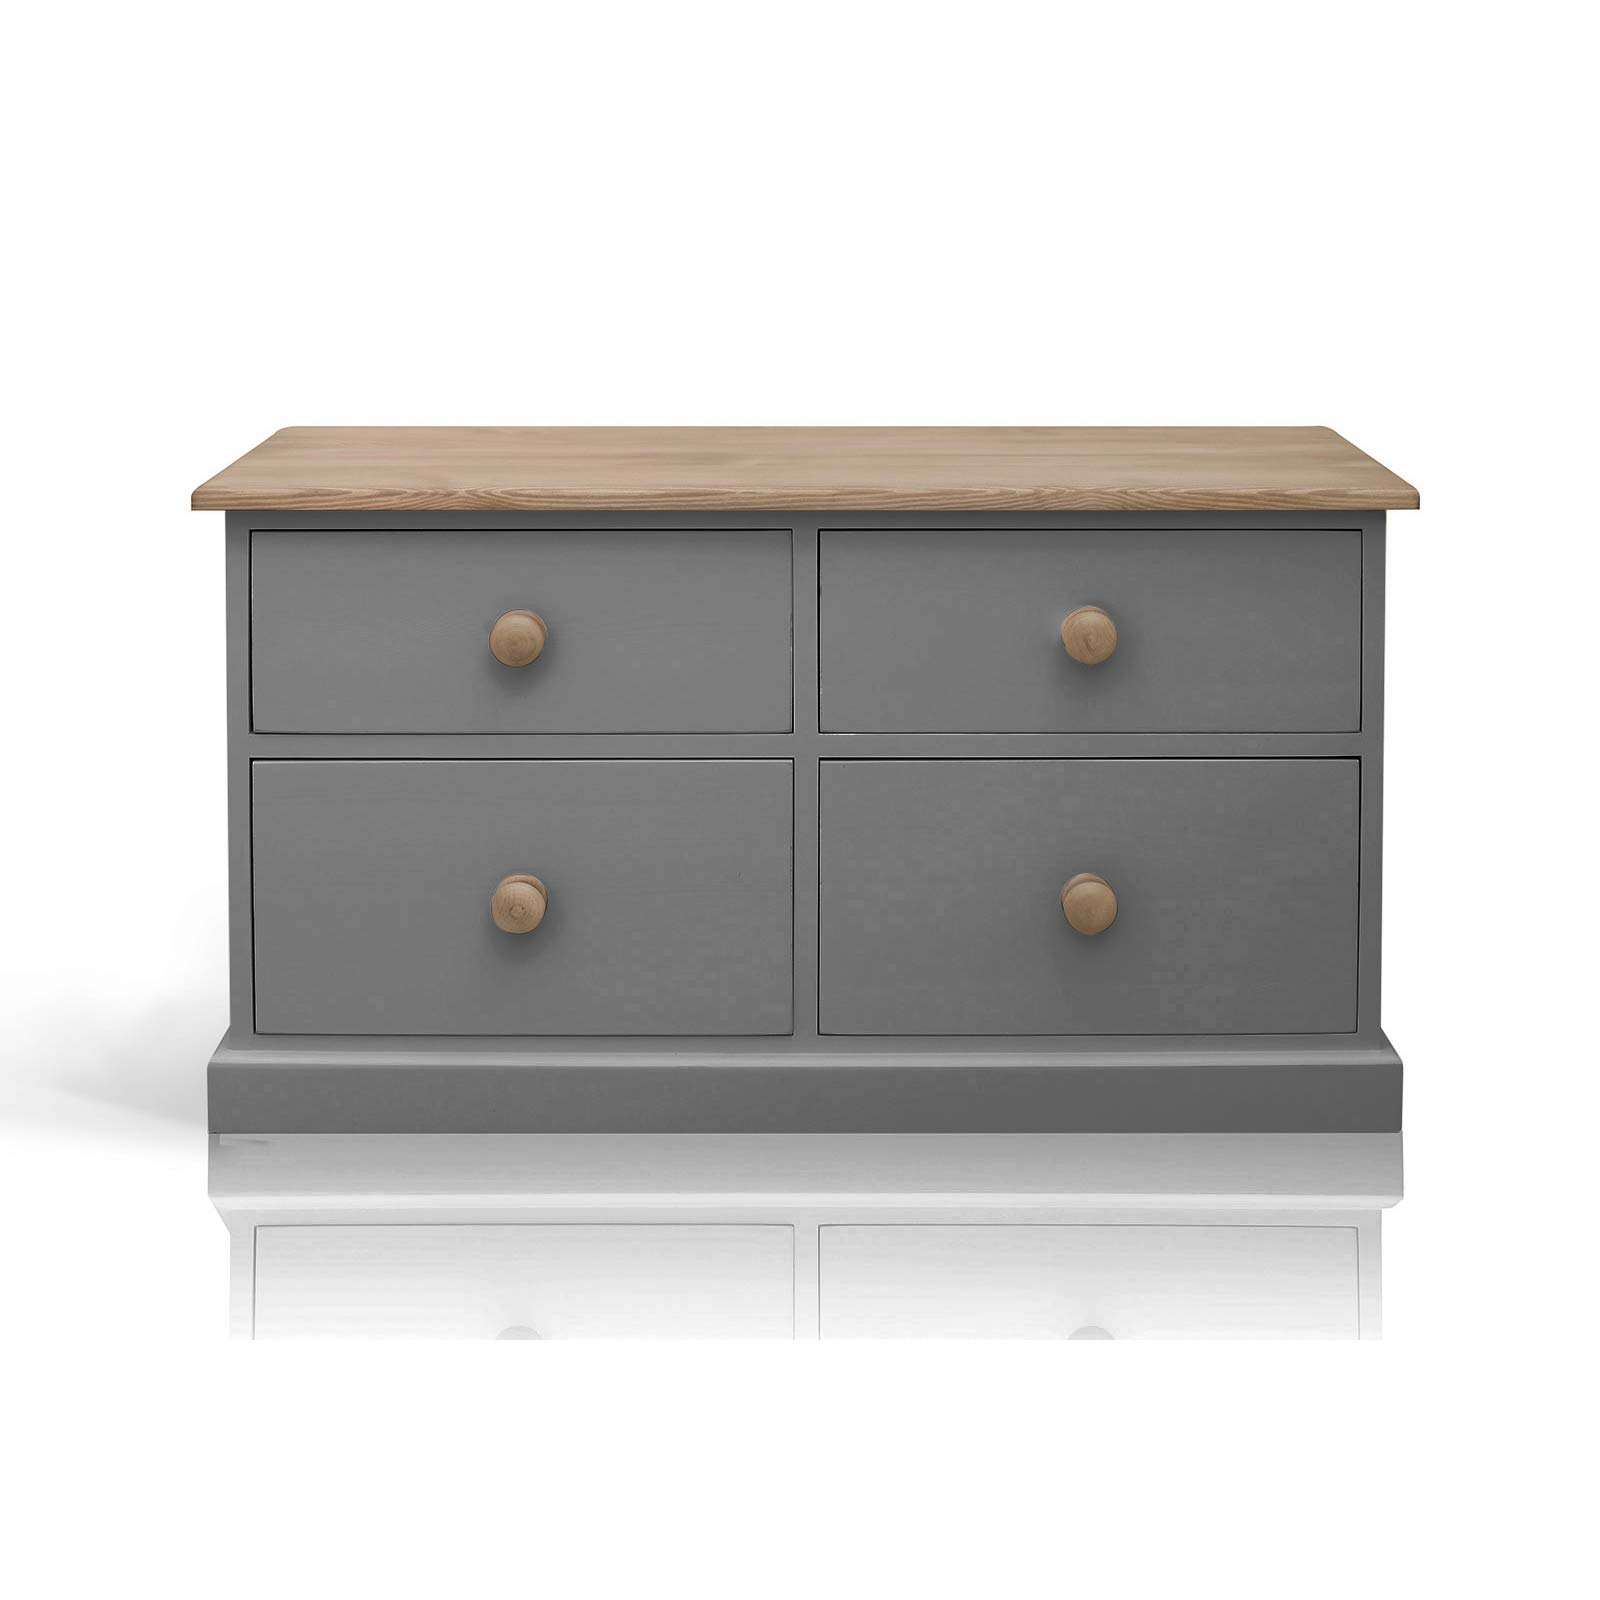 Beyond Home The Soho Painted Furniture Collection Low Chest of Drawers in Grey